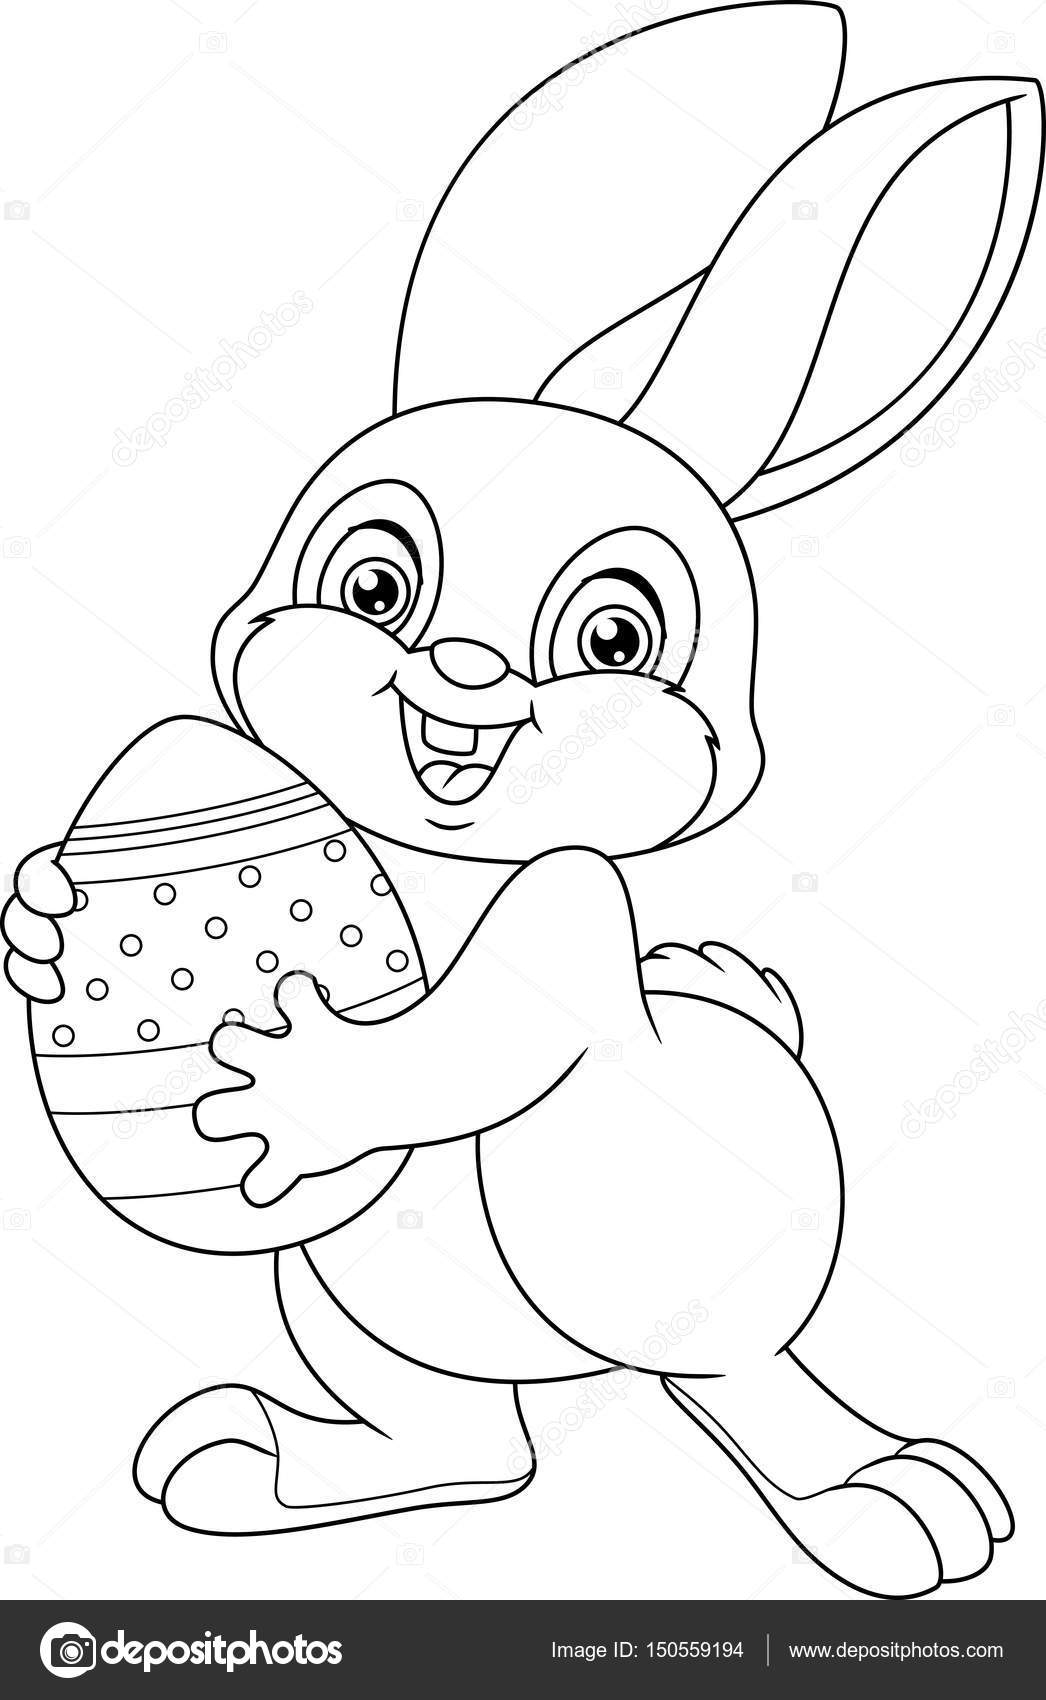 Easter Rabbit Coloring Page — Stock Vector © Malyaka #150559194